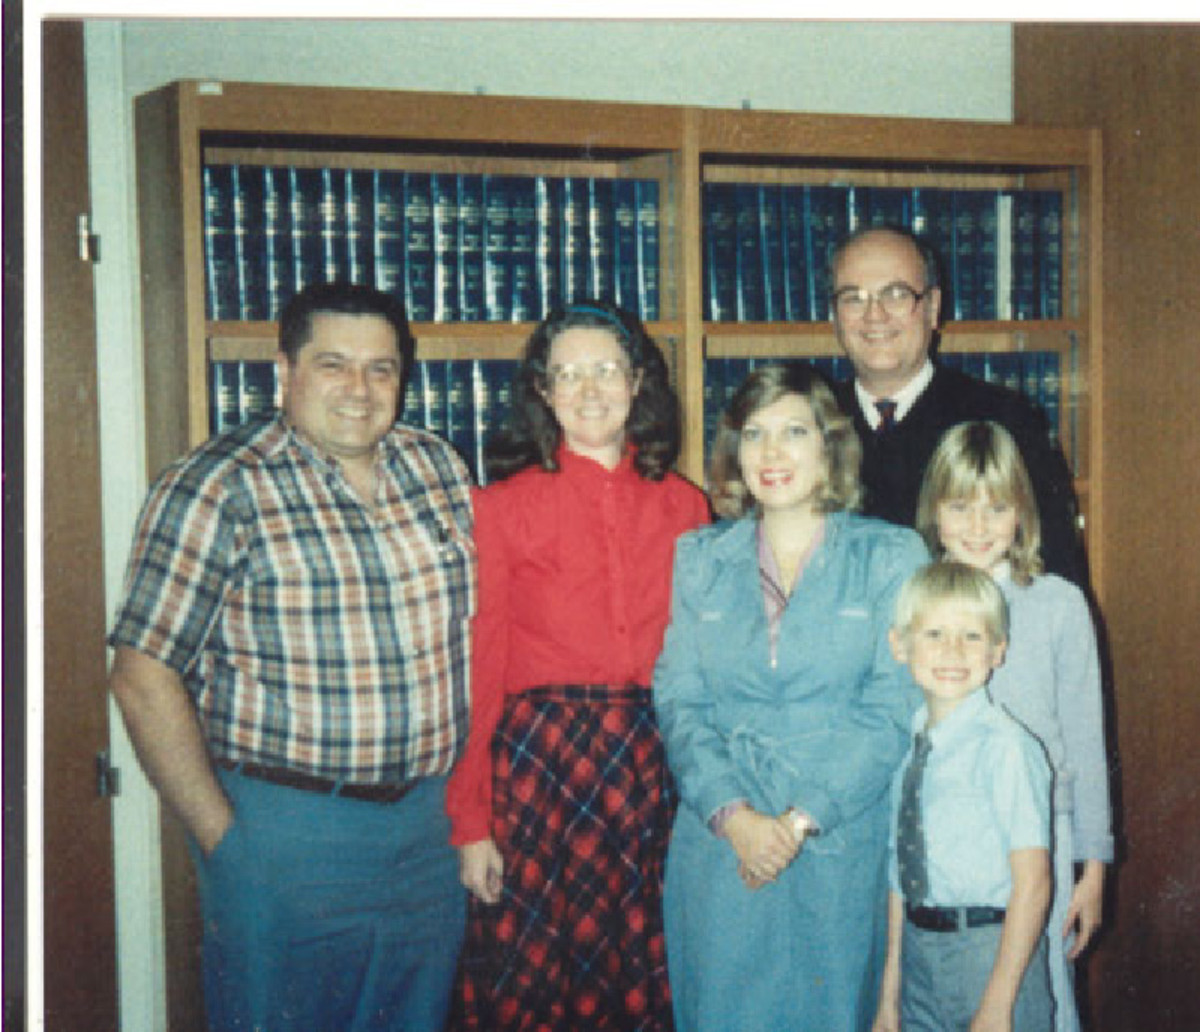 Adoption Day, 1984, in Judge's Chambers